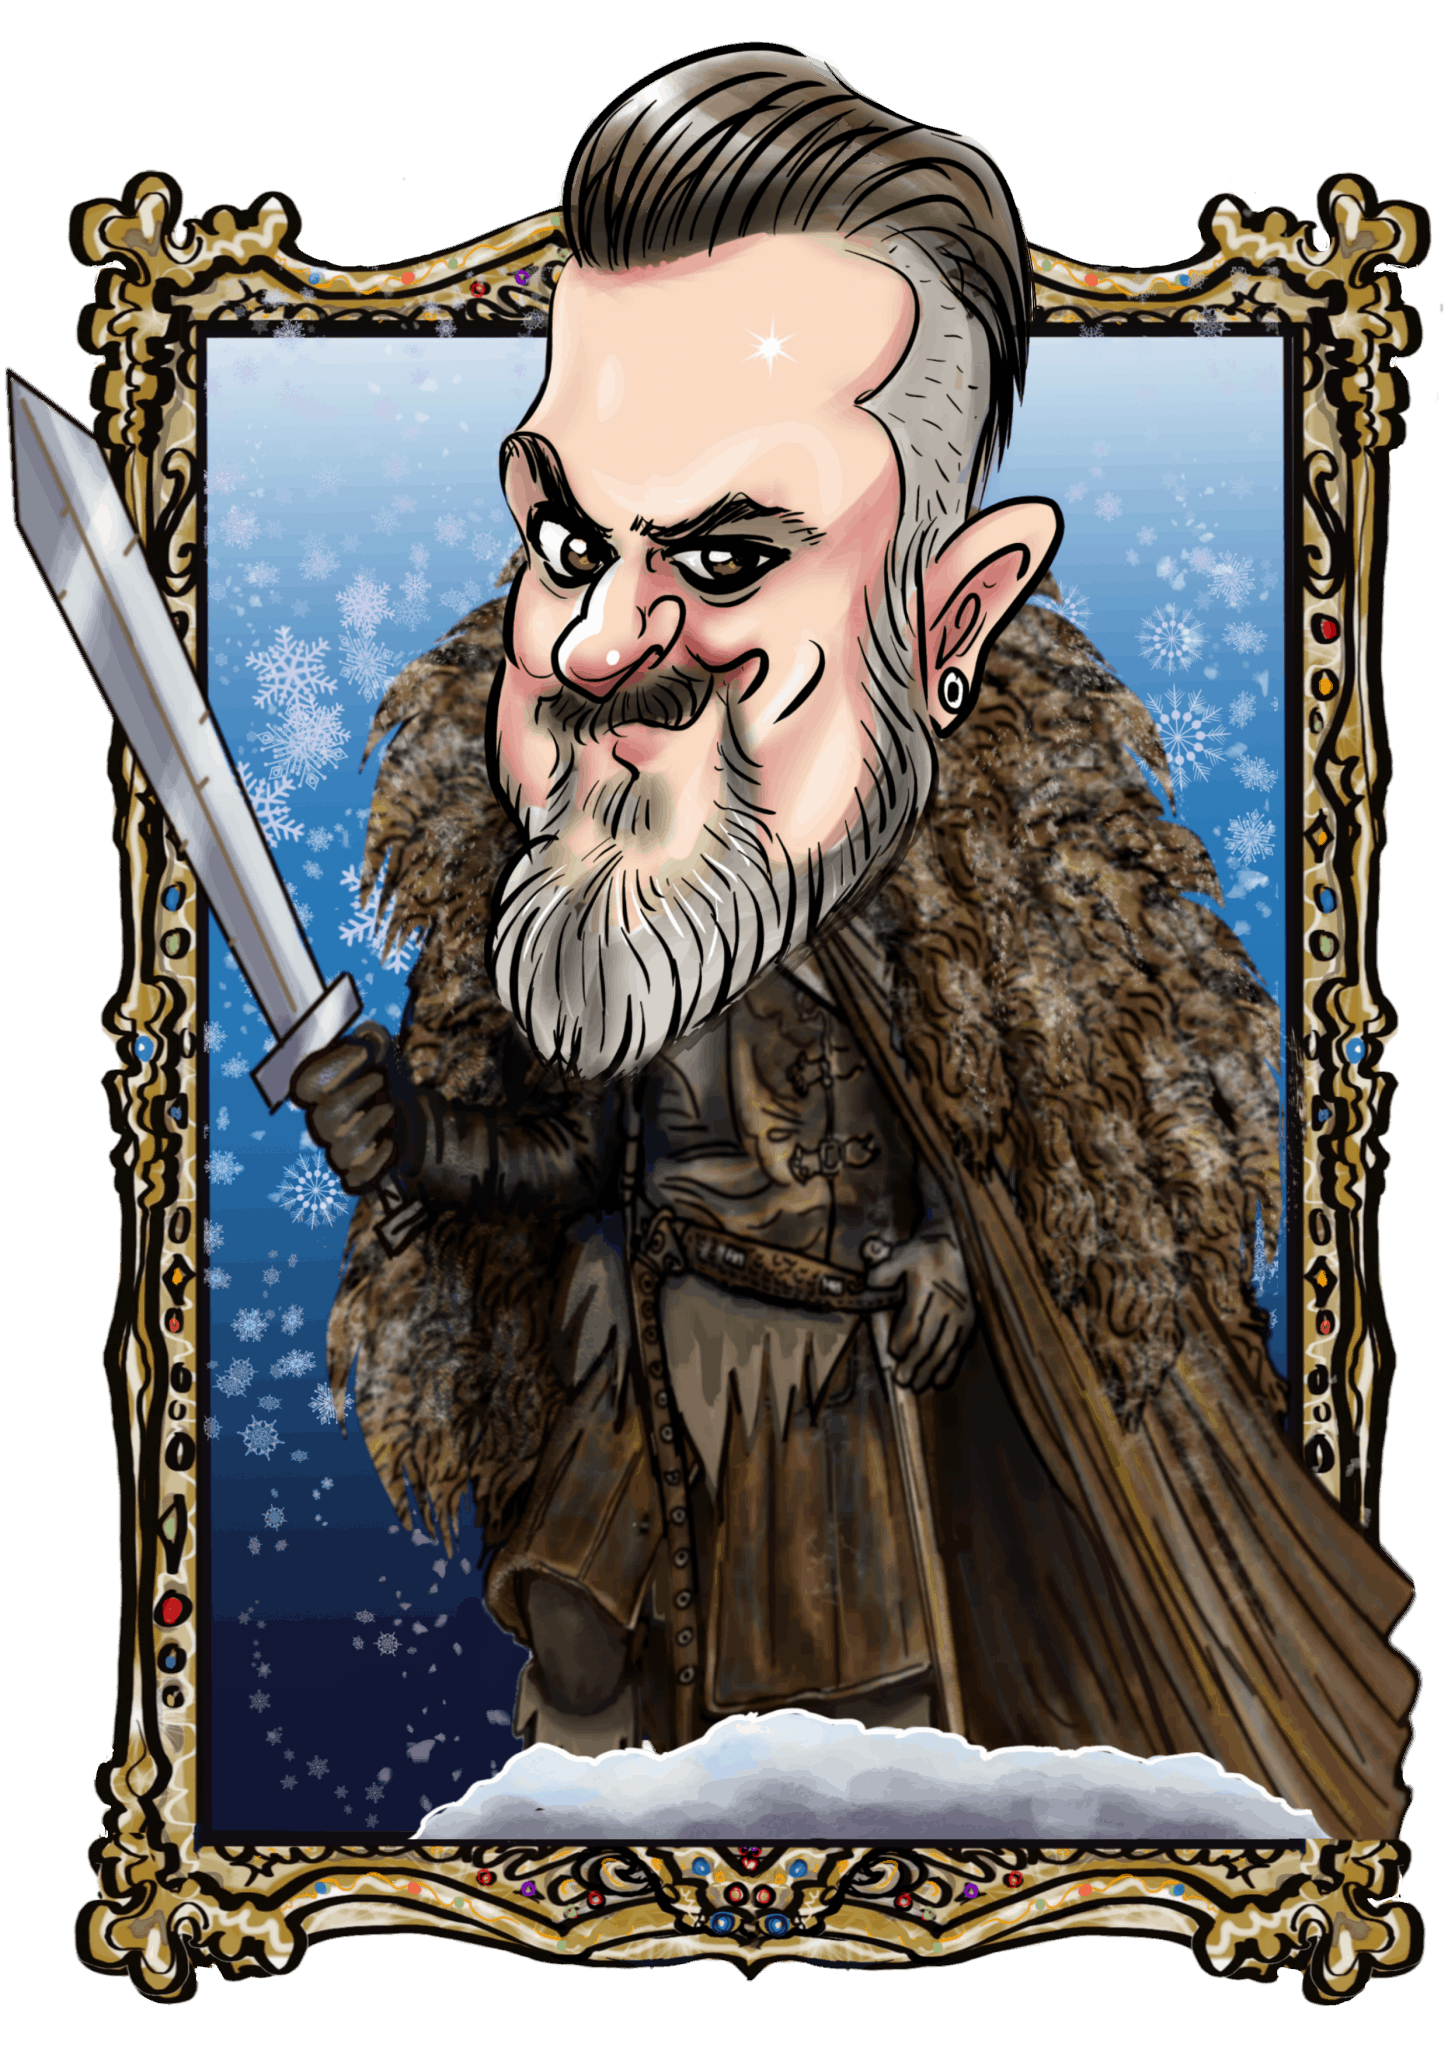 GAME OF THRONES THEMED DIGITAL CARICATURES WITH TRANSPARENT BACKGROUND by Luisa Calvo